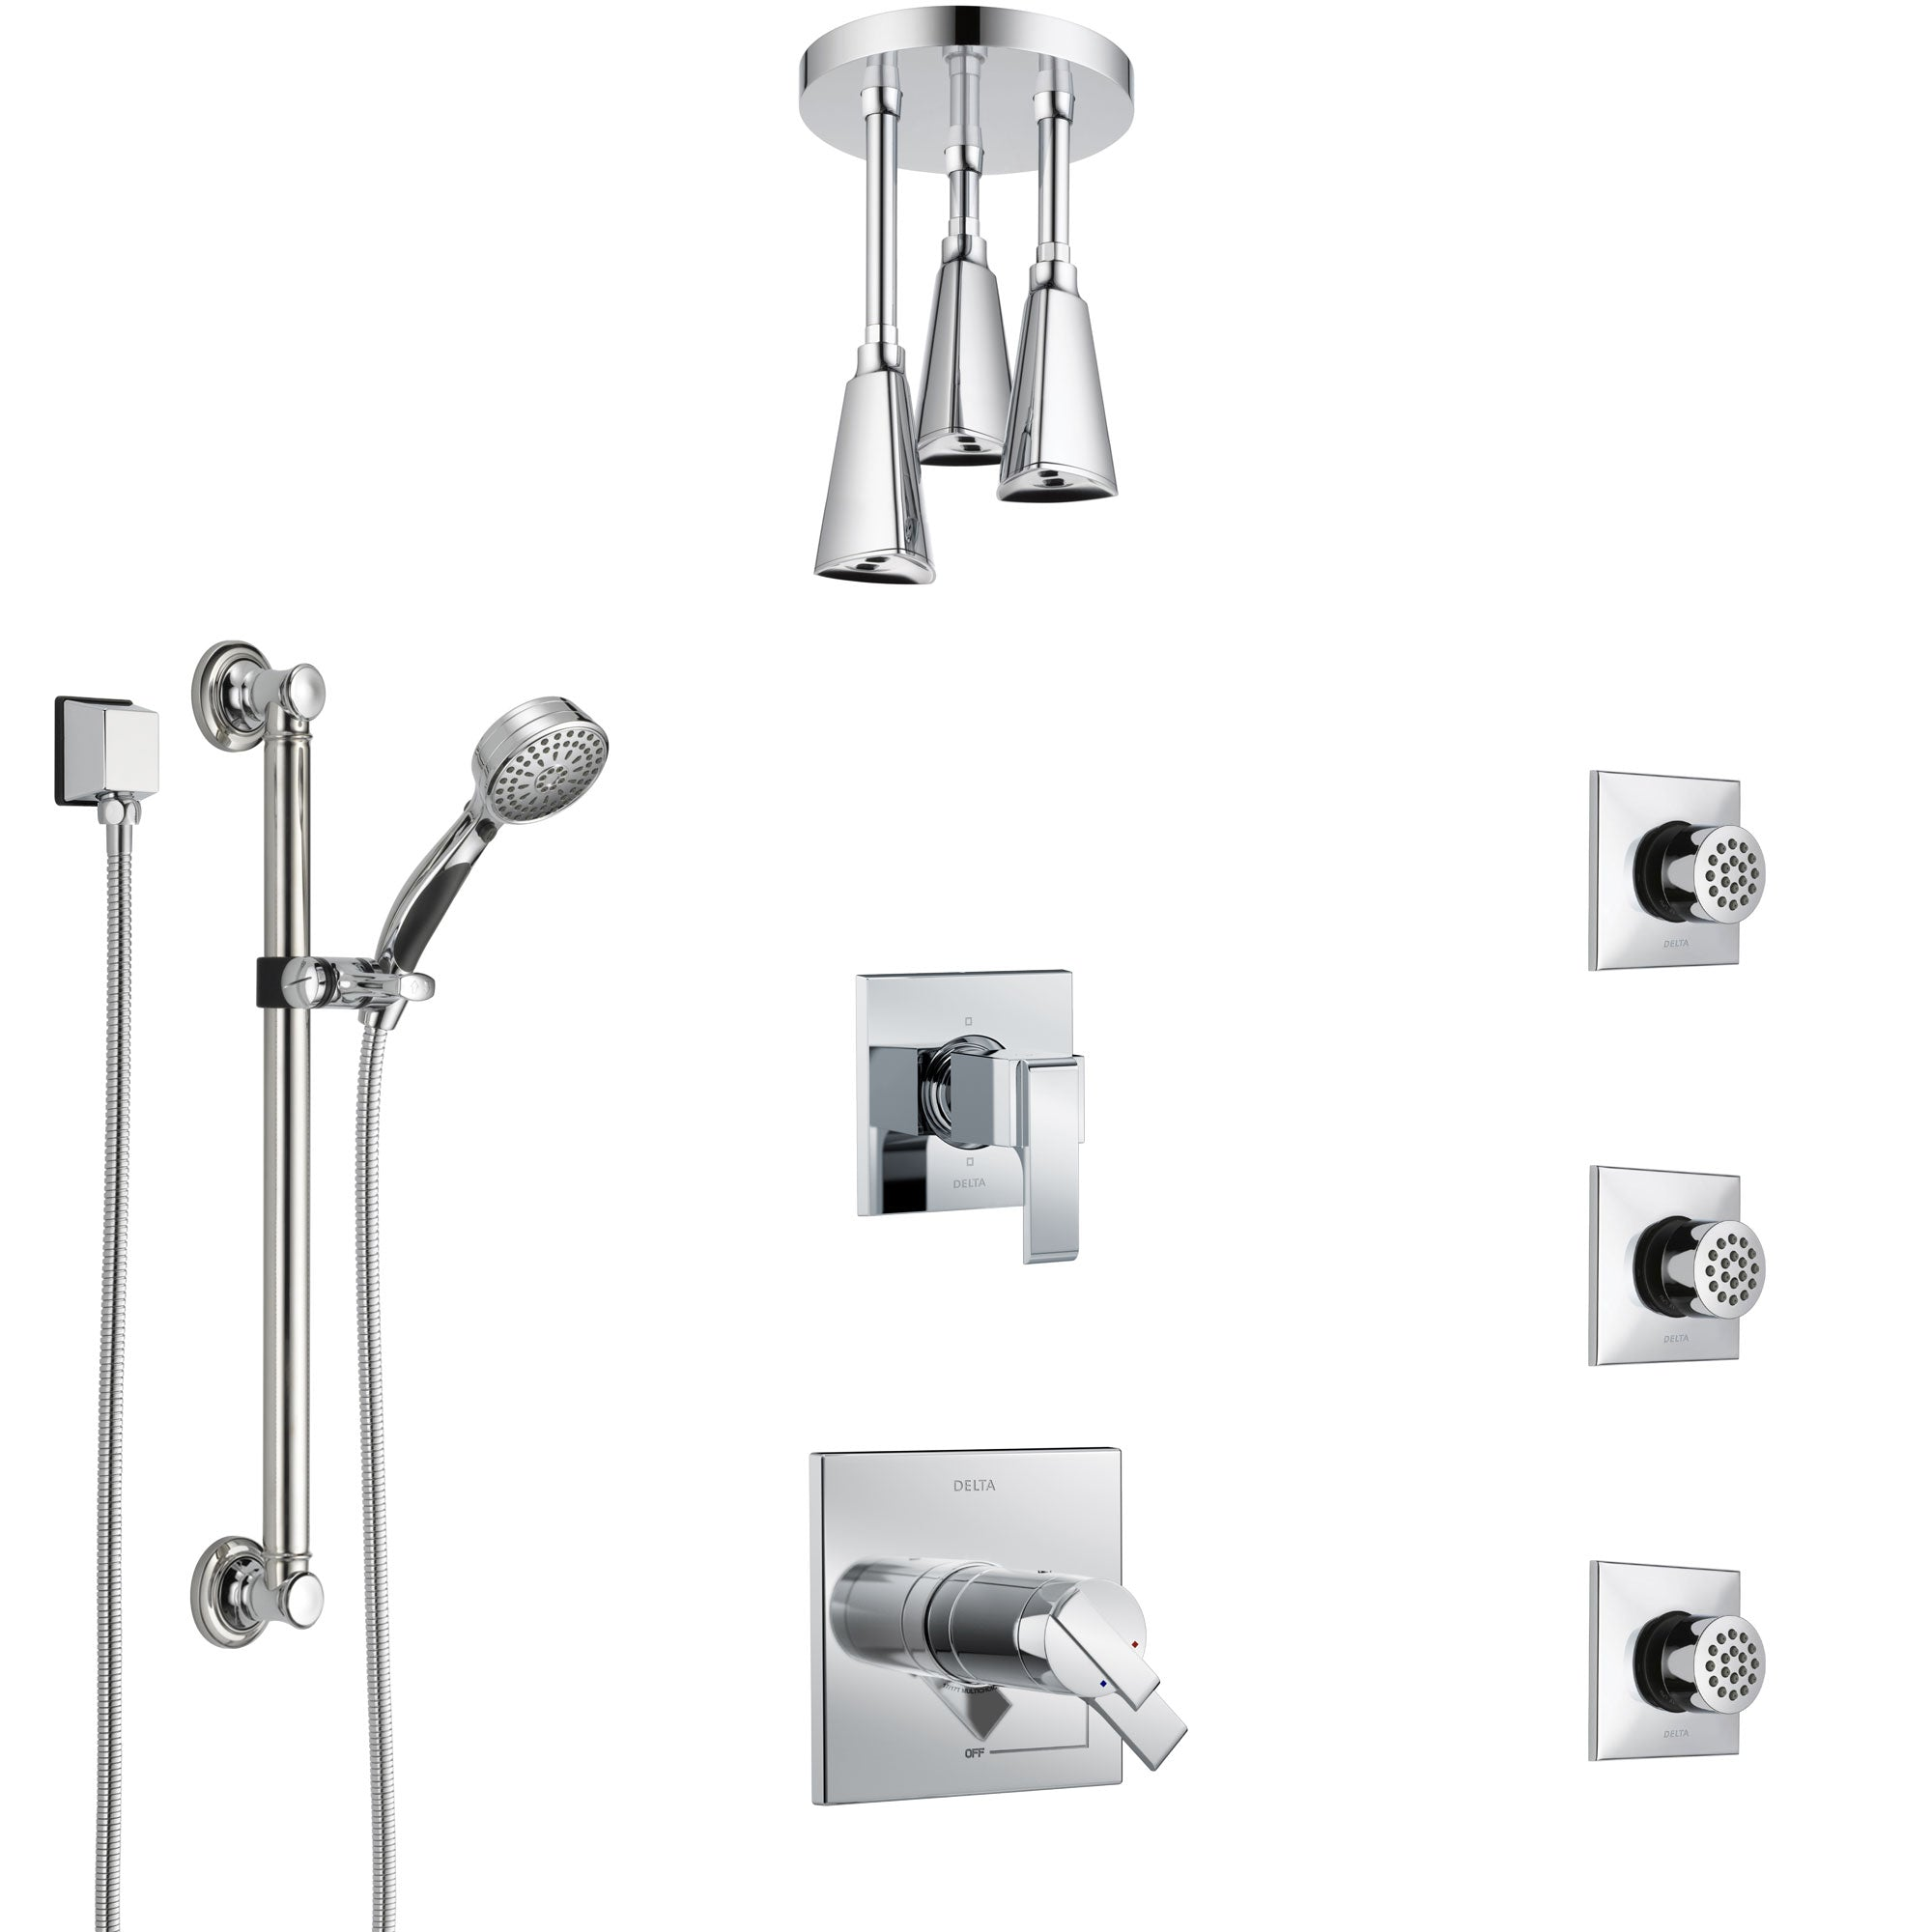 Delta Ara Chrome Shower System with Dual Thermostatic Control, Diverter, Ceiling Mount Showerhead, 3 Body Sprays, and Grab Bar Hand Shower SS17T6724